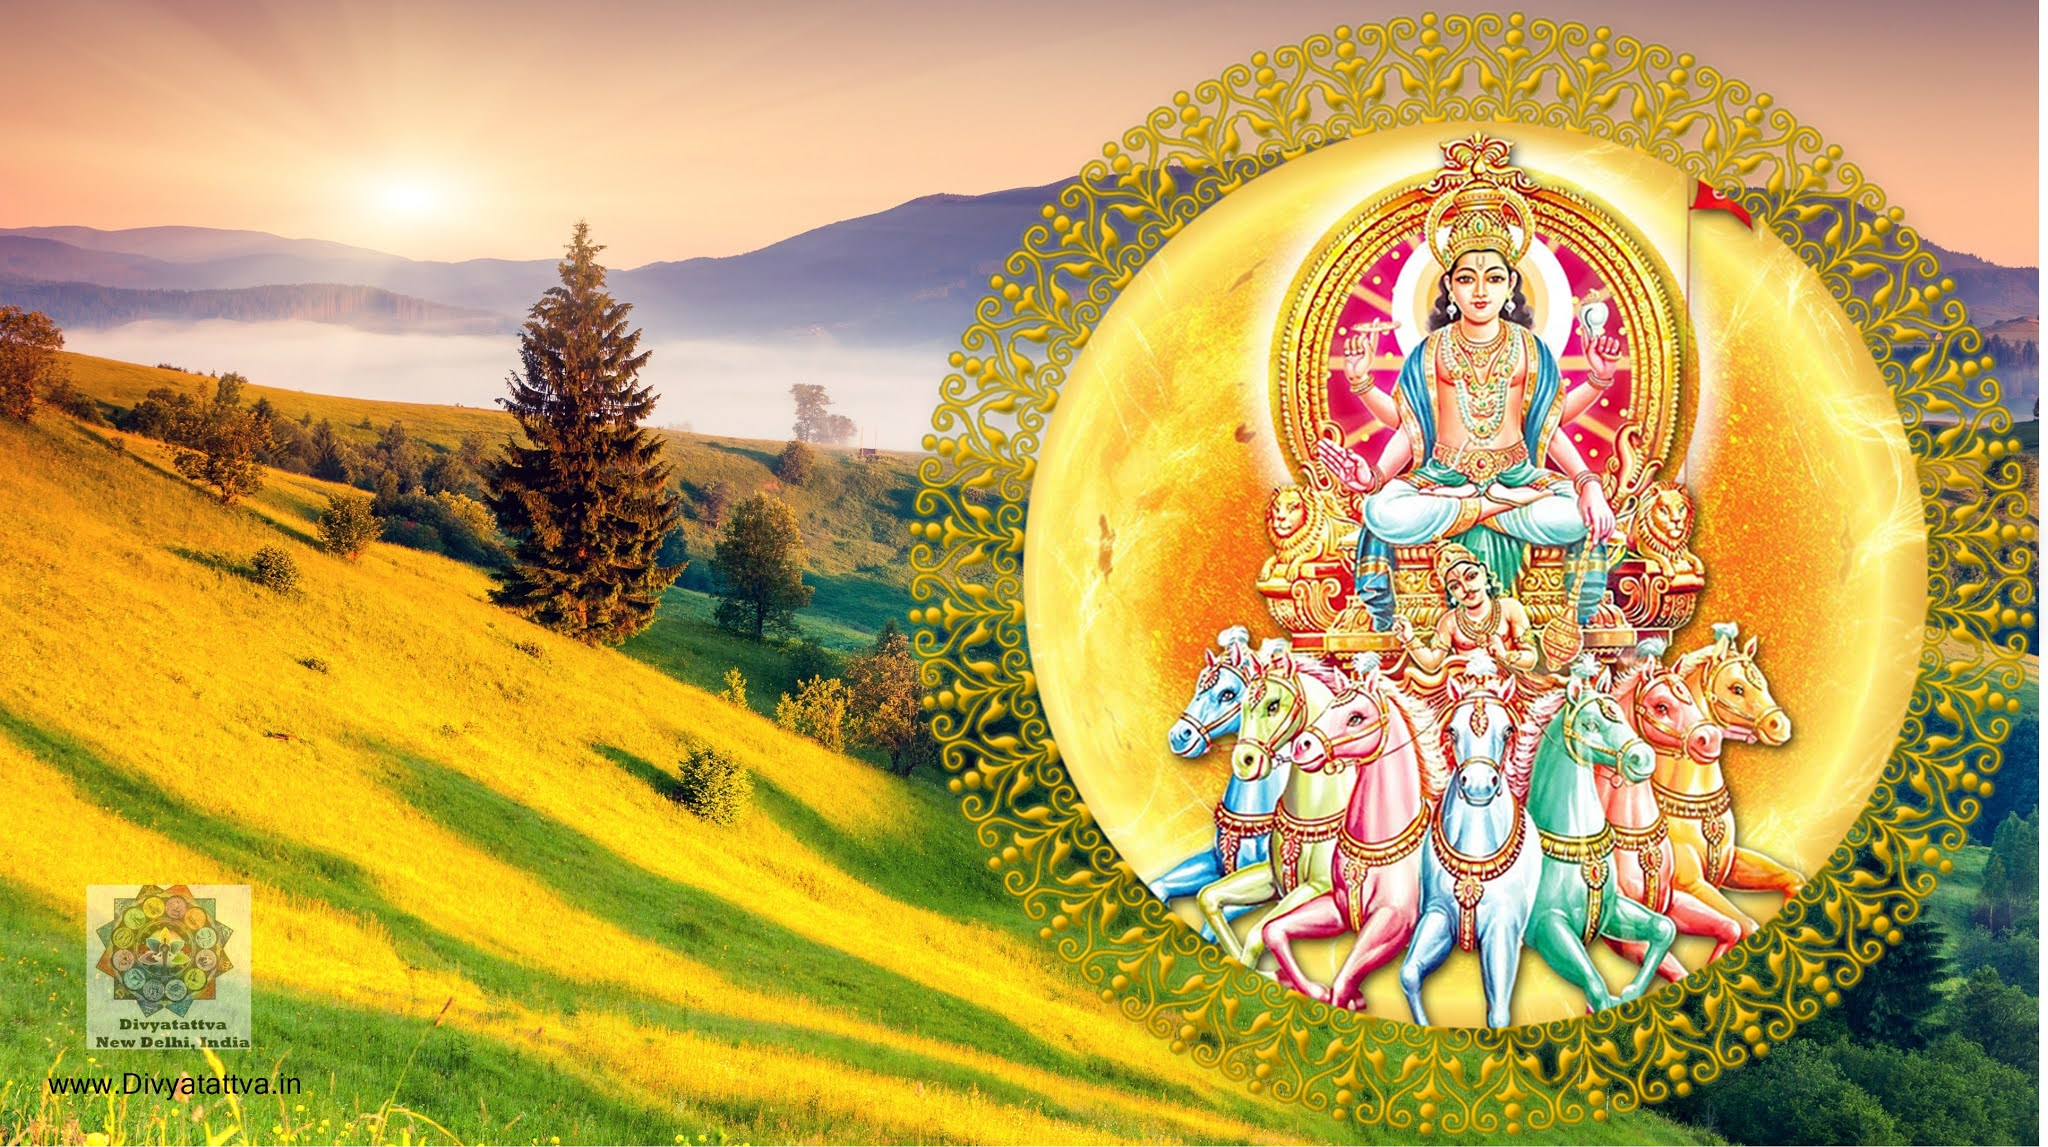 Sun God Images in 4k UHD Wallpapers Full Size Surya Narayan Picture Backgrounds in Wide Screen